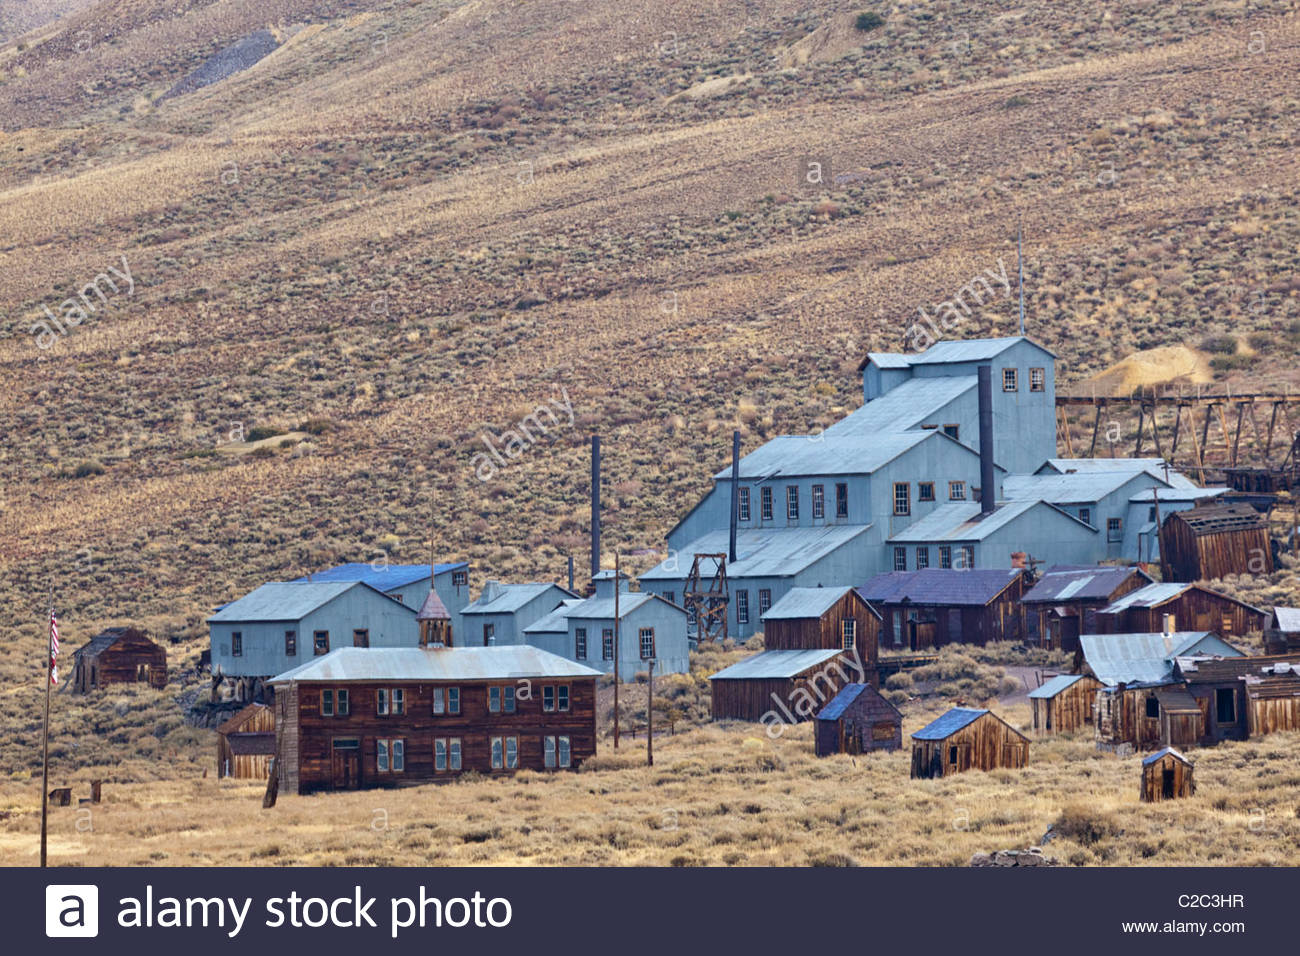 Preserved buildings in an alpine ghost town. - Stock Image